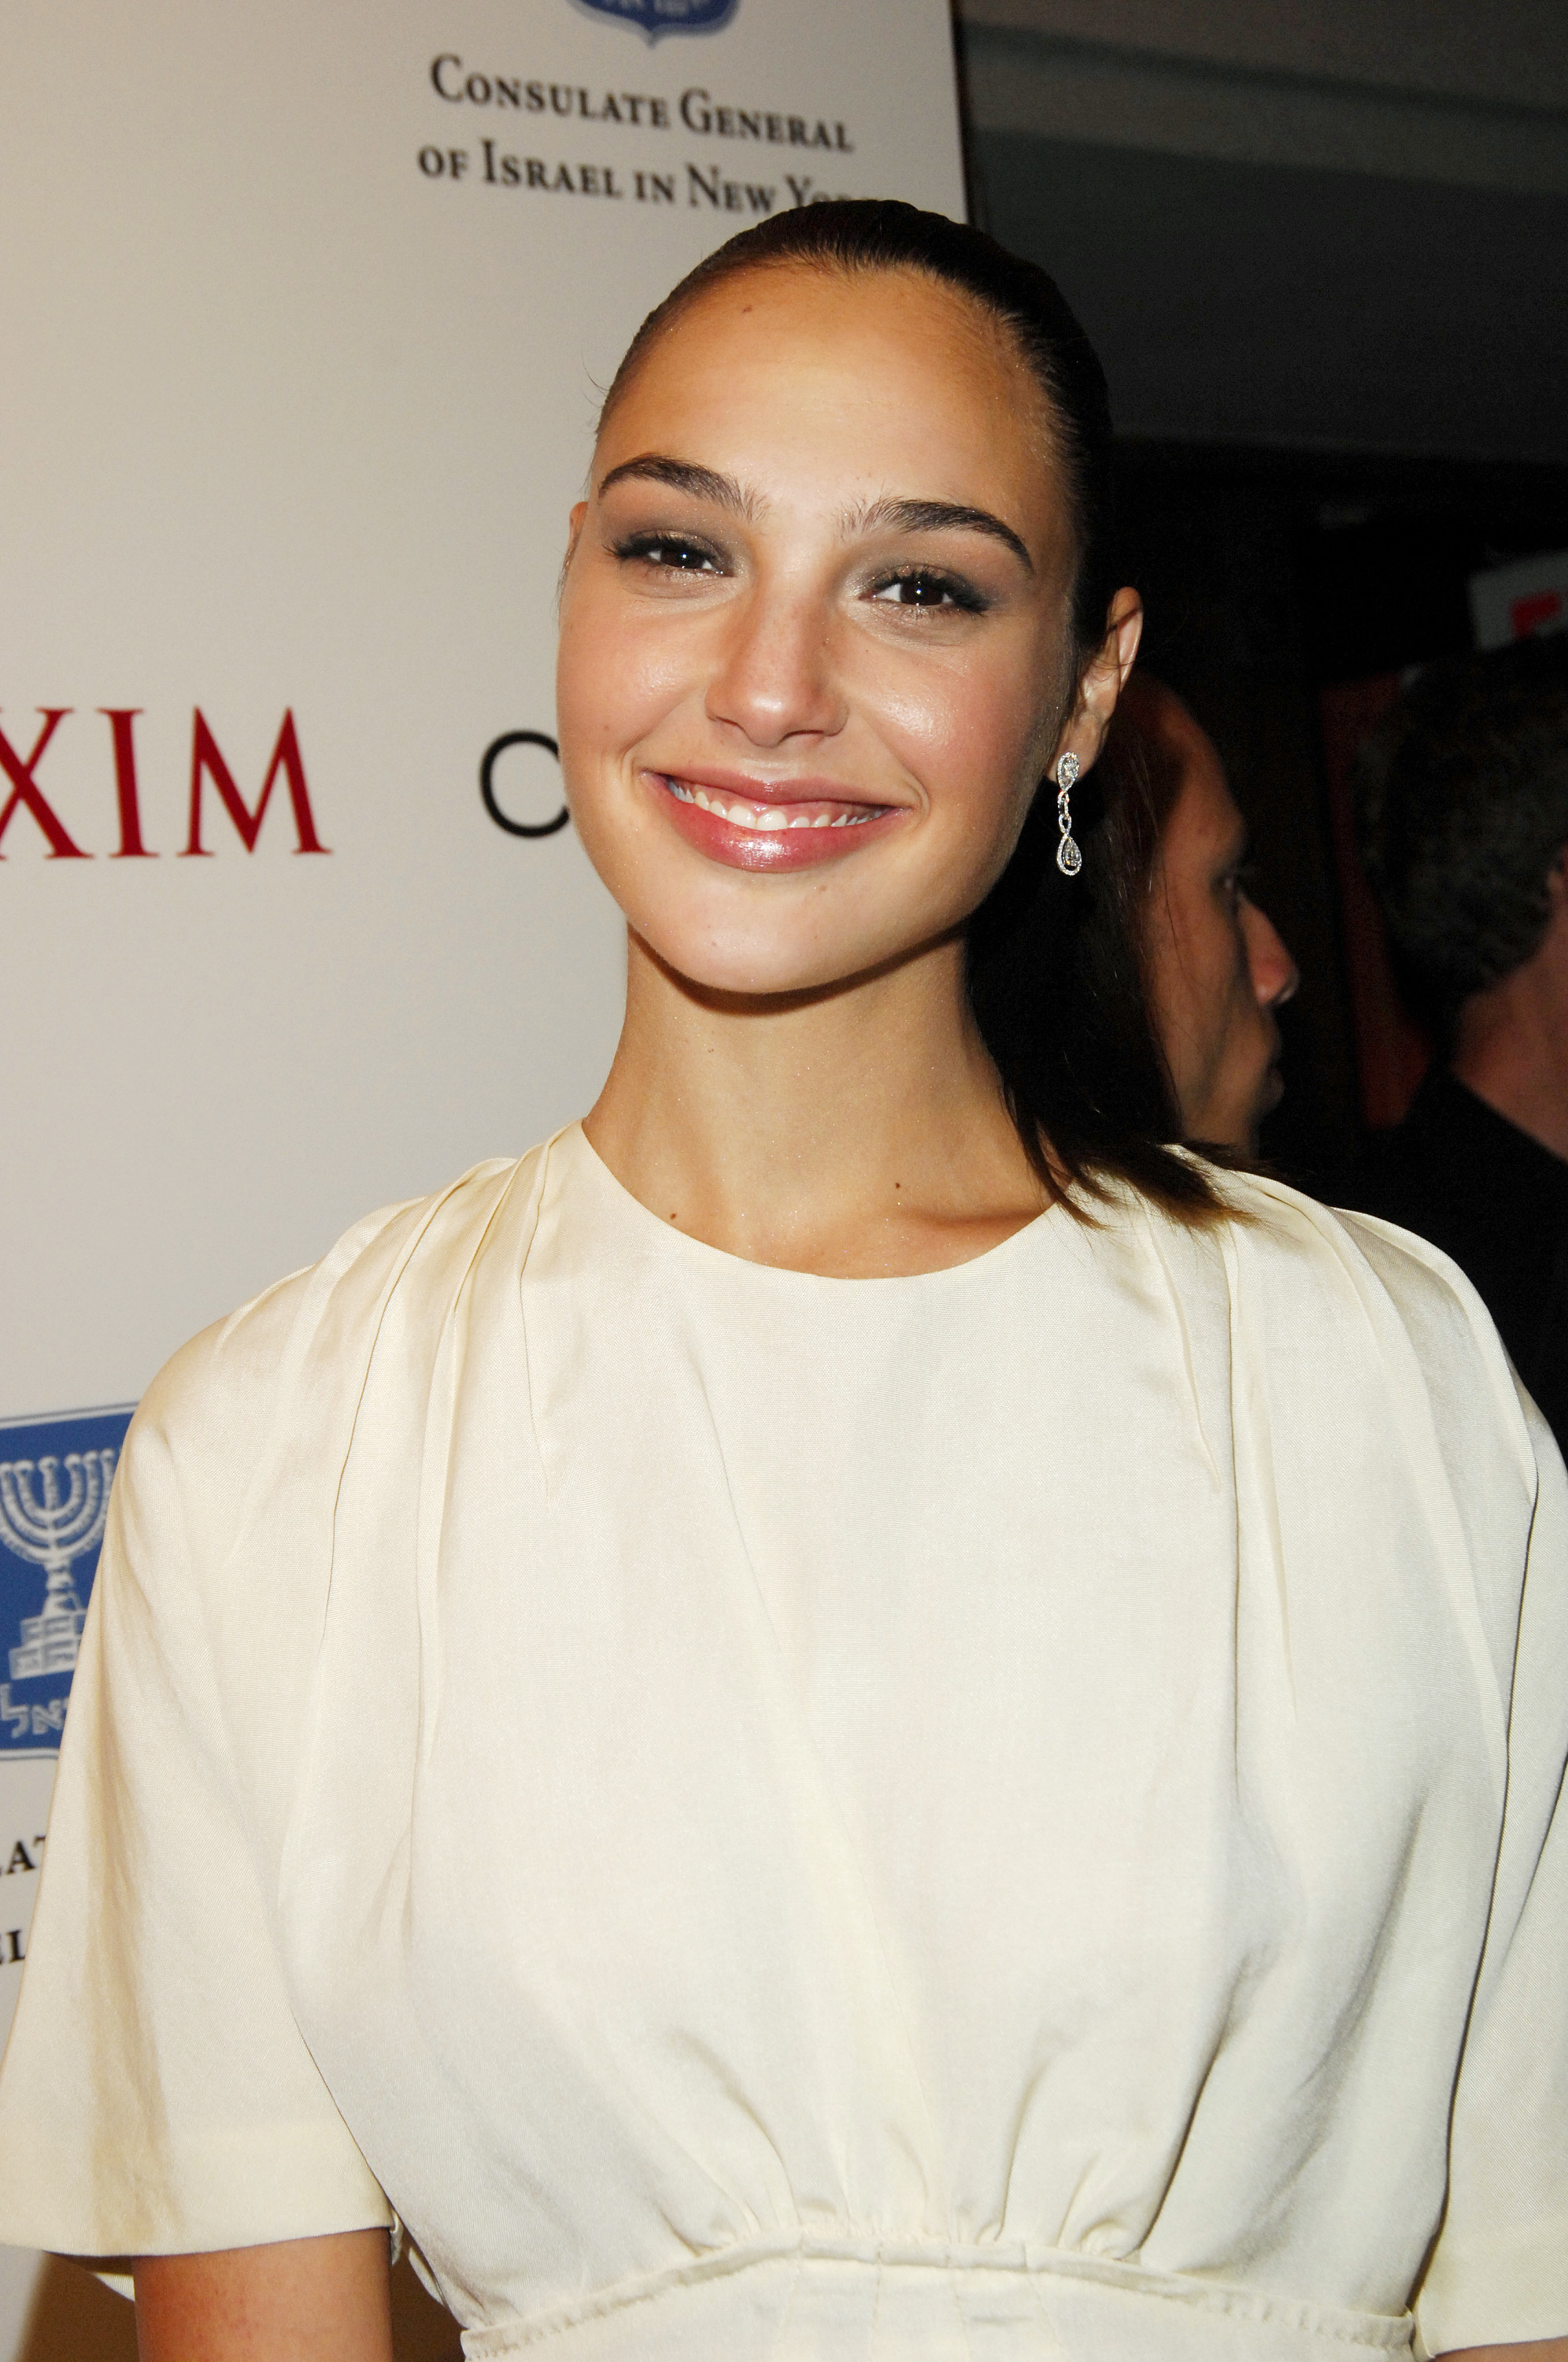 Gal Gadot wearing a white top posing at an event in the early 2000s